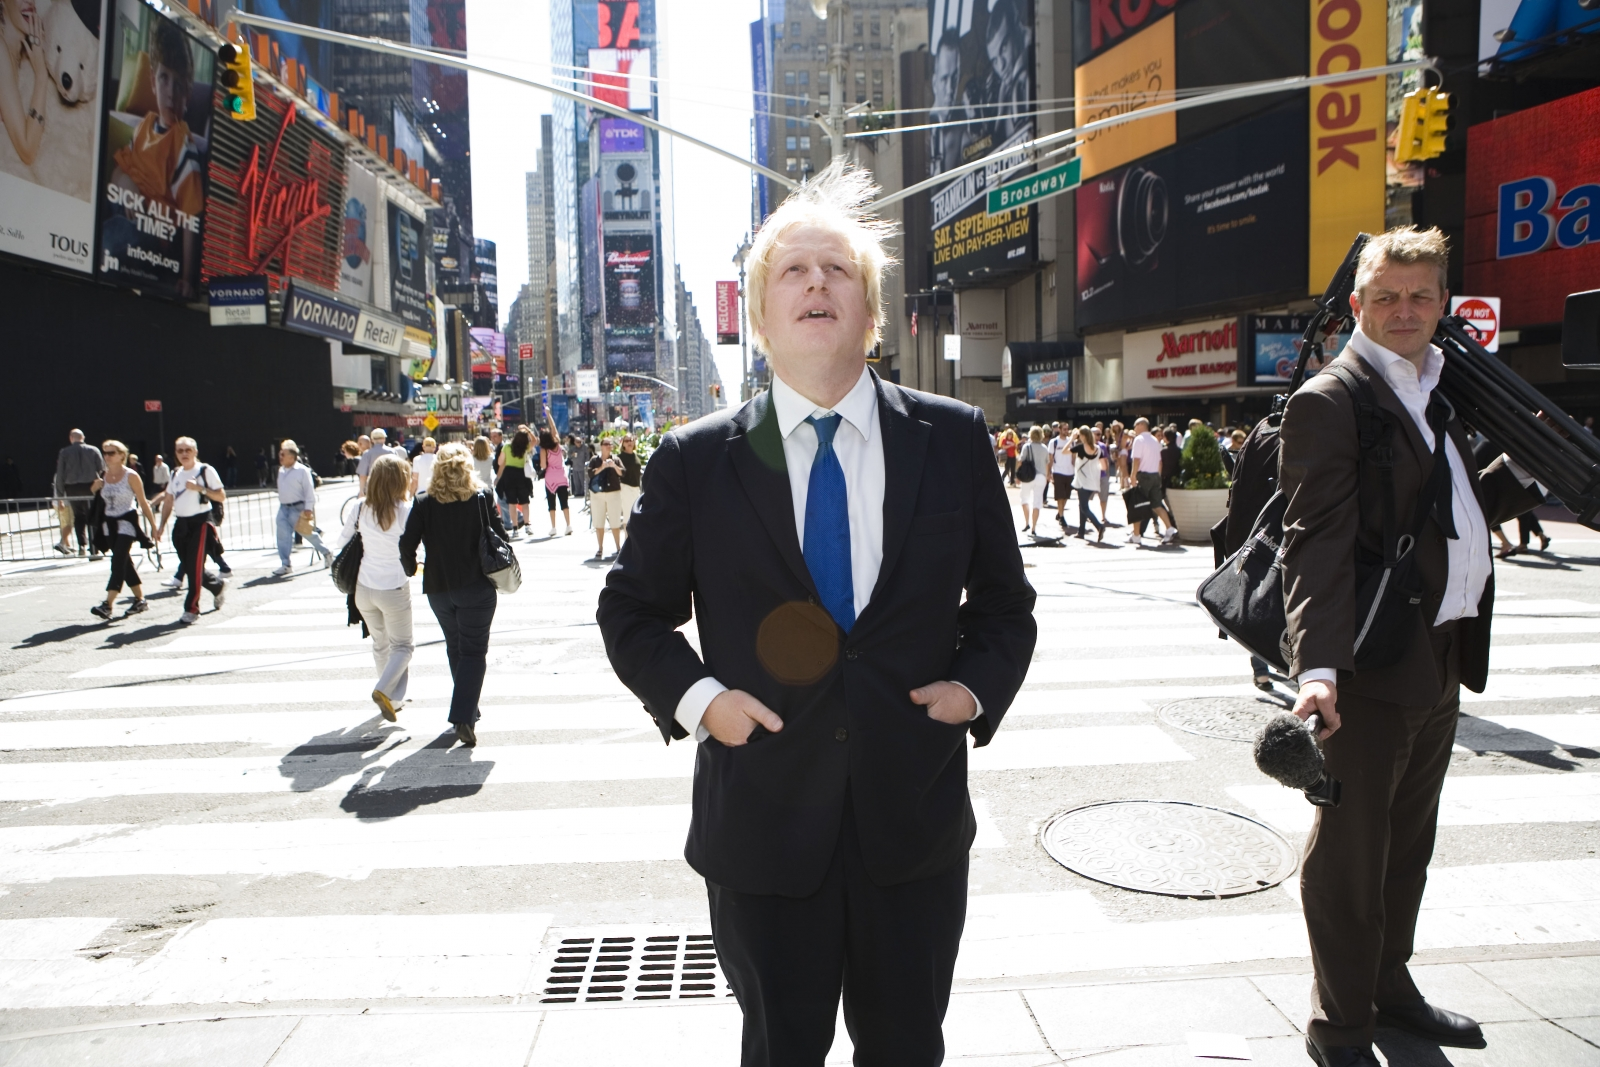 Boris Johnson in Times Square, New York. Johnson plans to give up his US passport. (Getty)